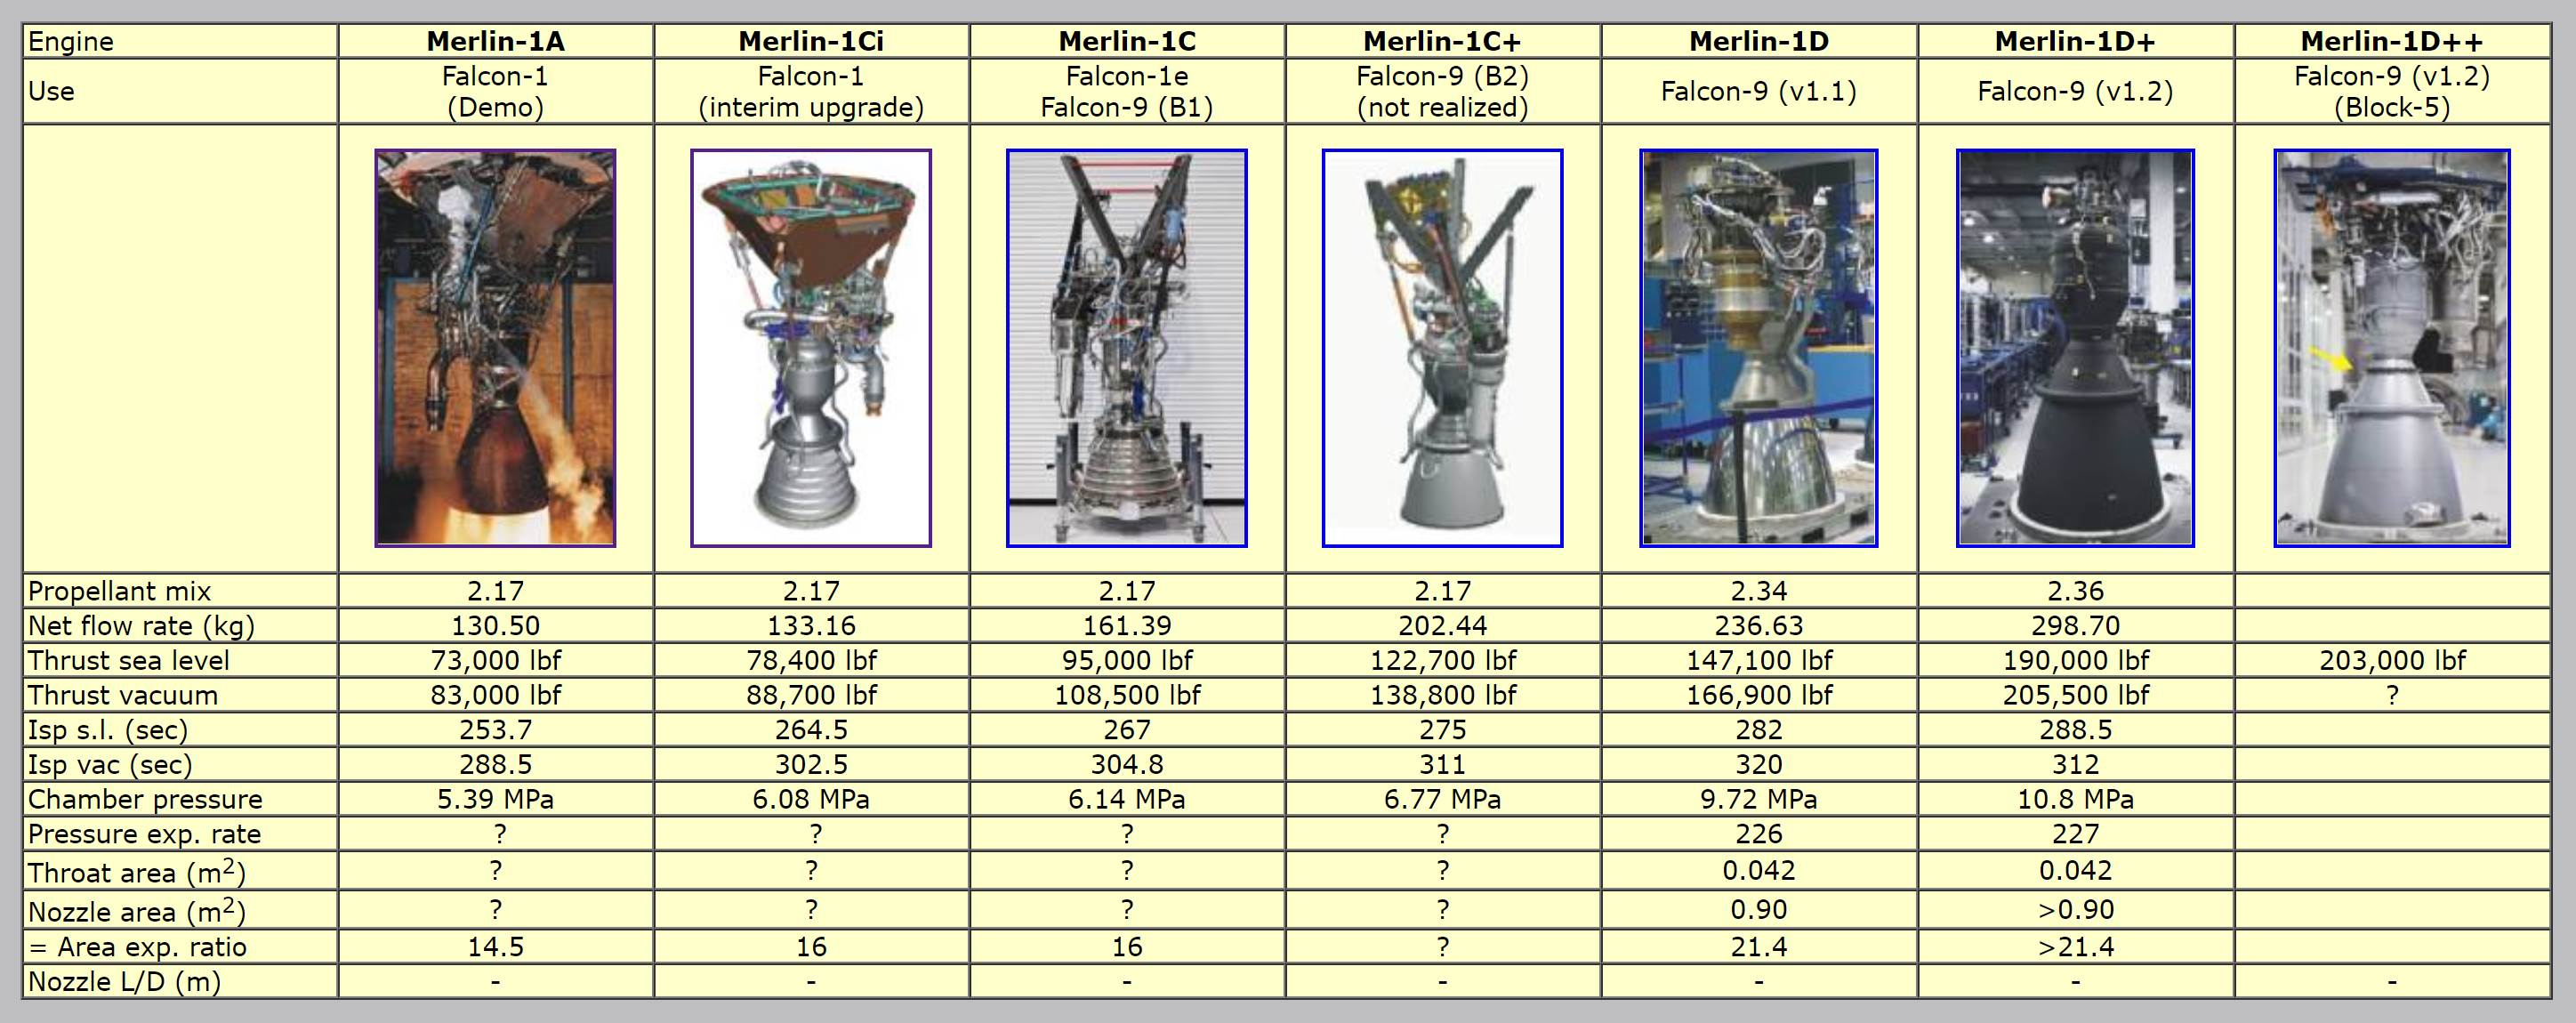 https://www.teslarati.com/wp-content/uploads/2019/02/Merlin-engine-history-B14643-1.jpg